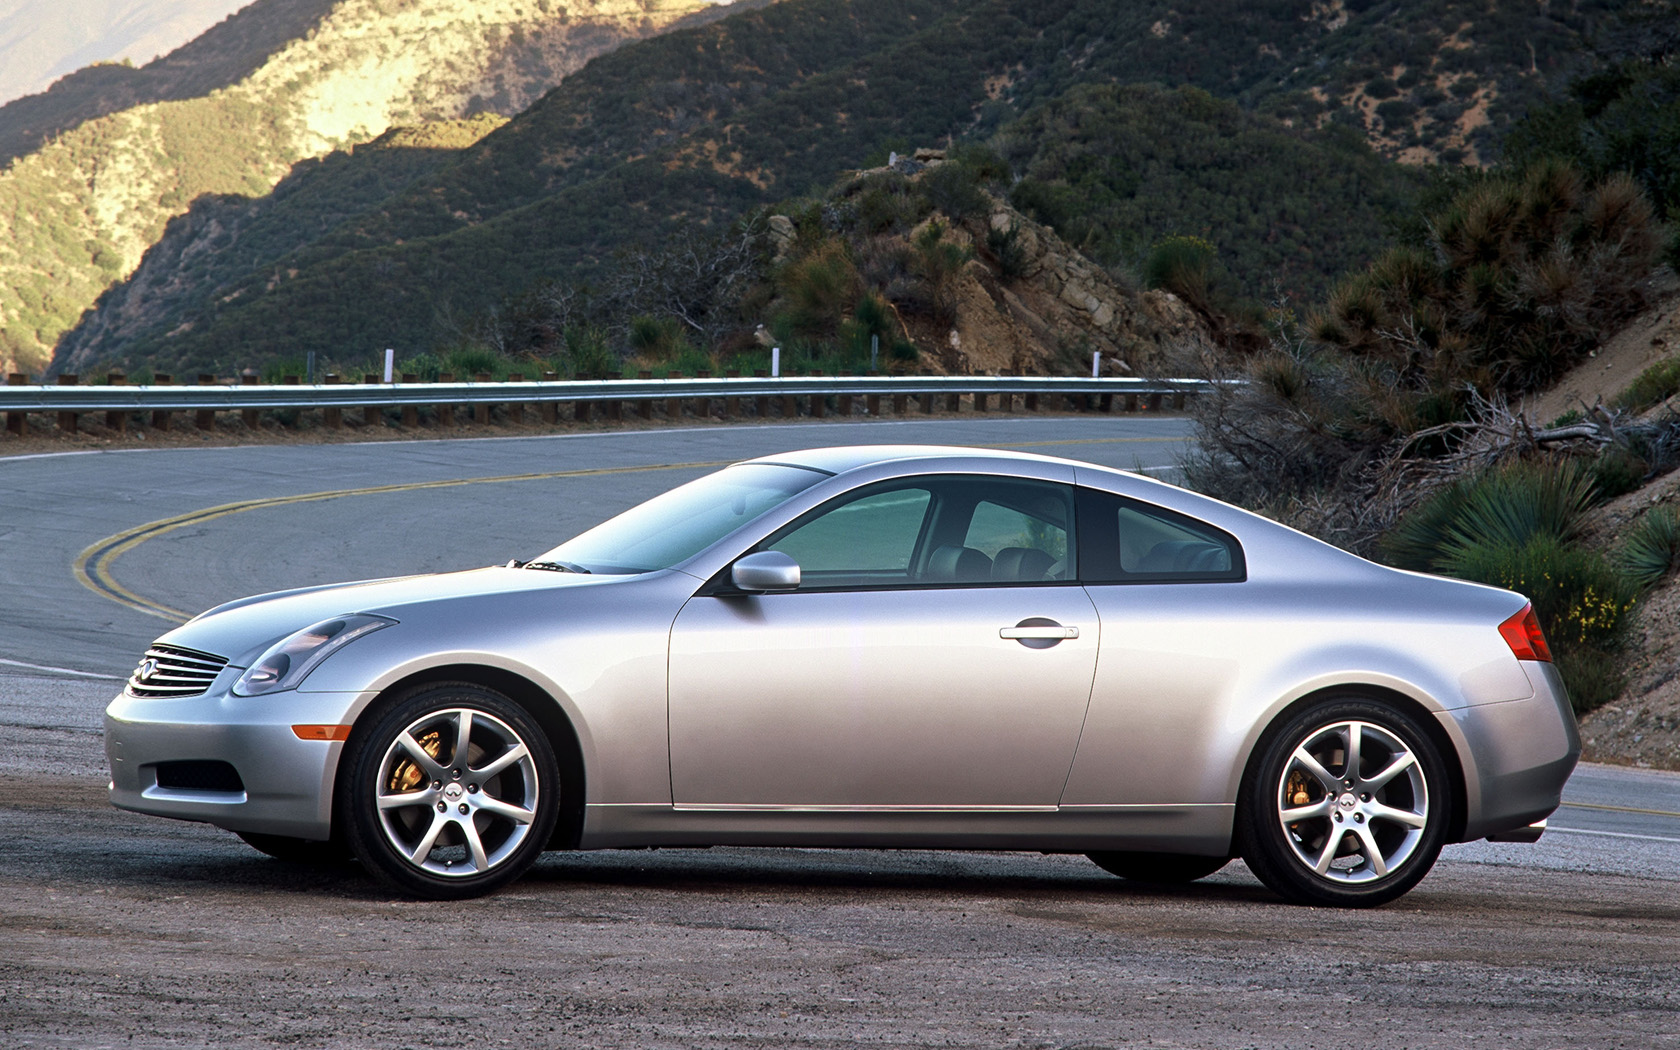 All Types infinity g35 2003 : 2003 - 2004 Infiniti G35 Coupe - Free Widescreen Wallpaper ...